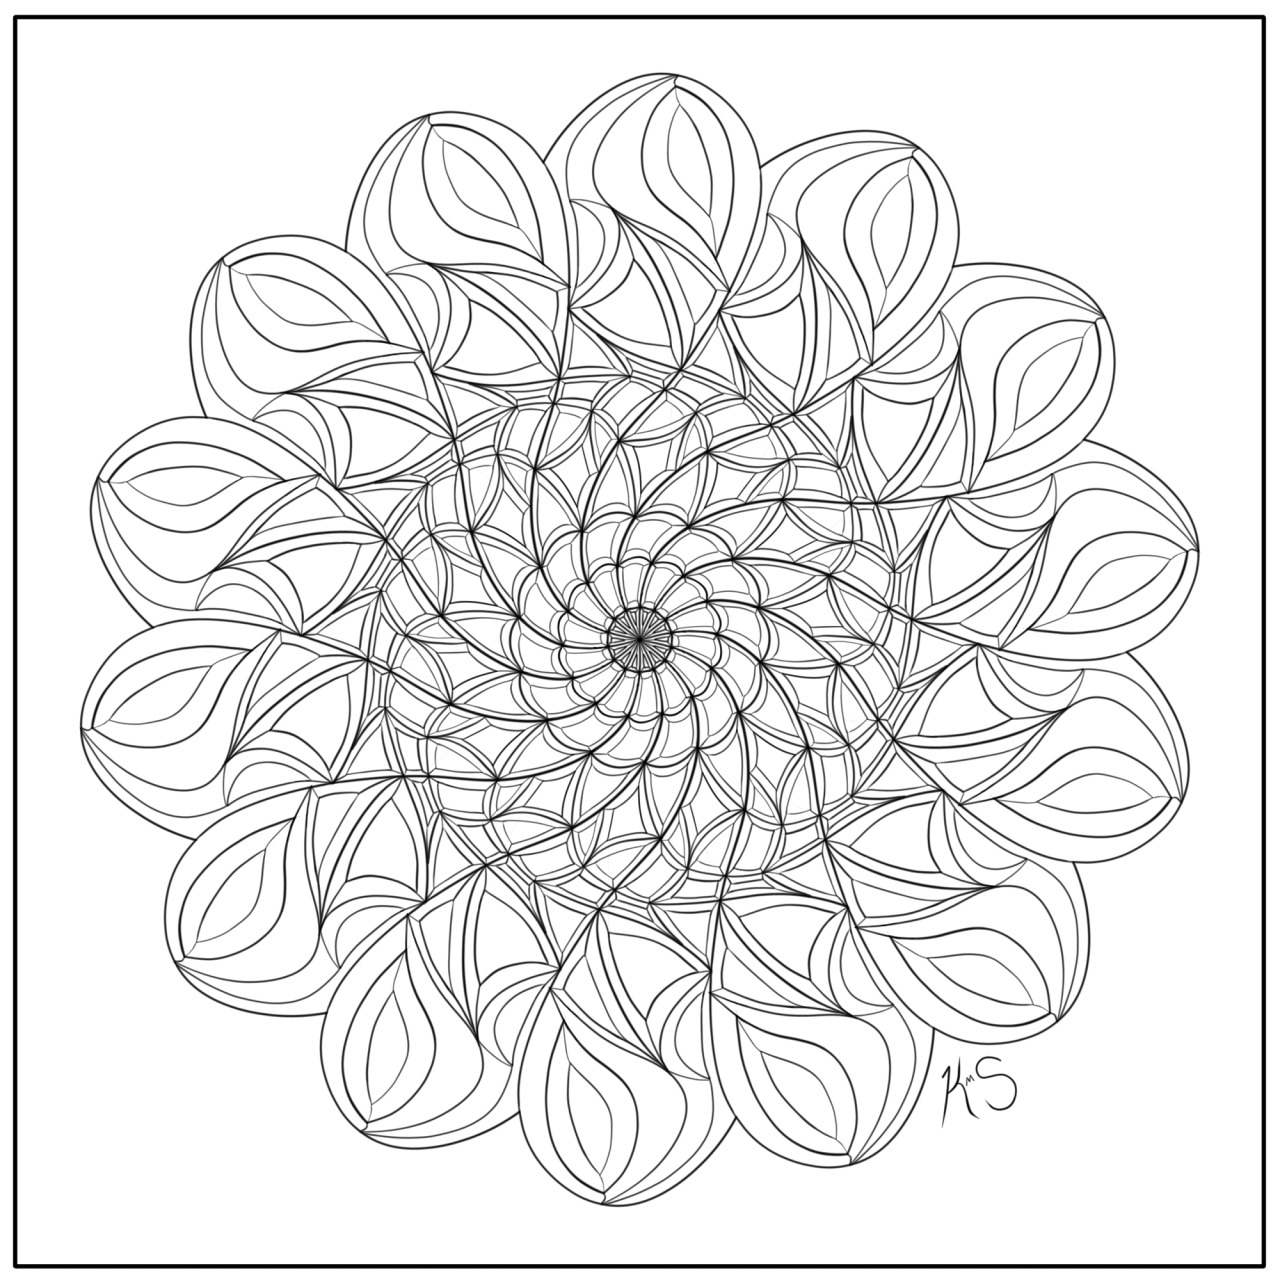 Printable Relaxation Colouring Pages : Relaxation Coloring Pages Coloring Home